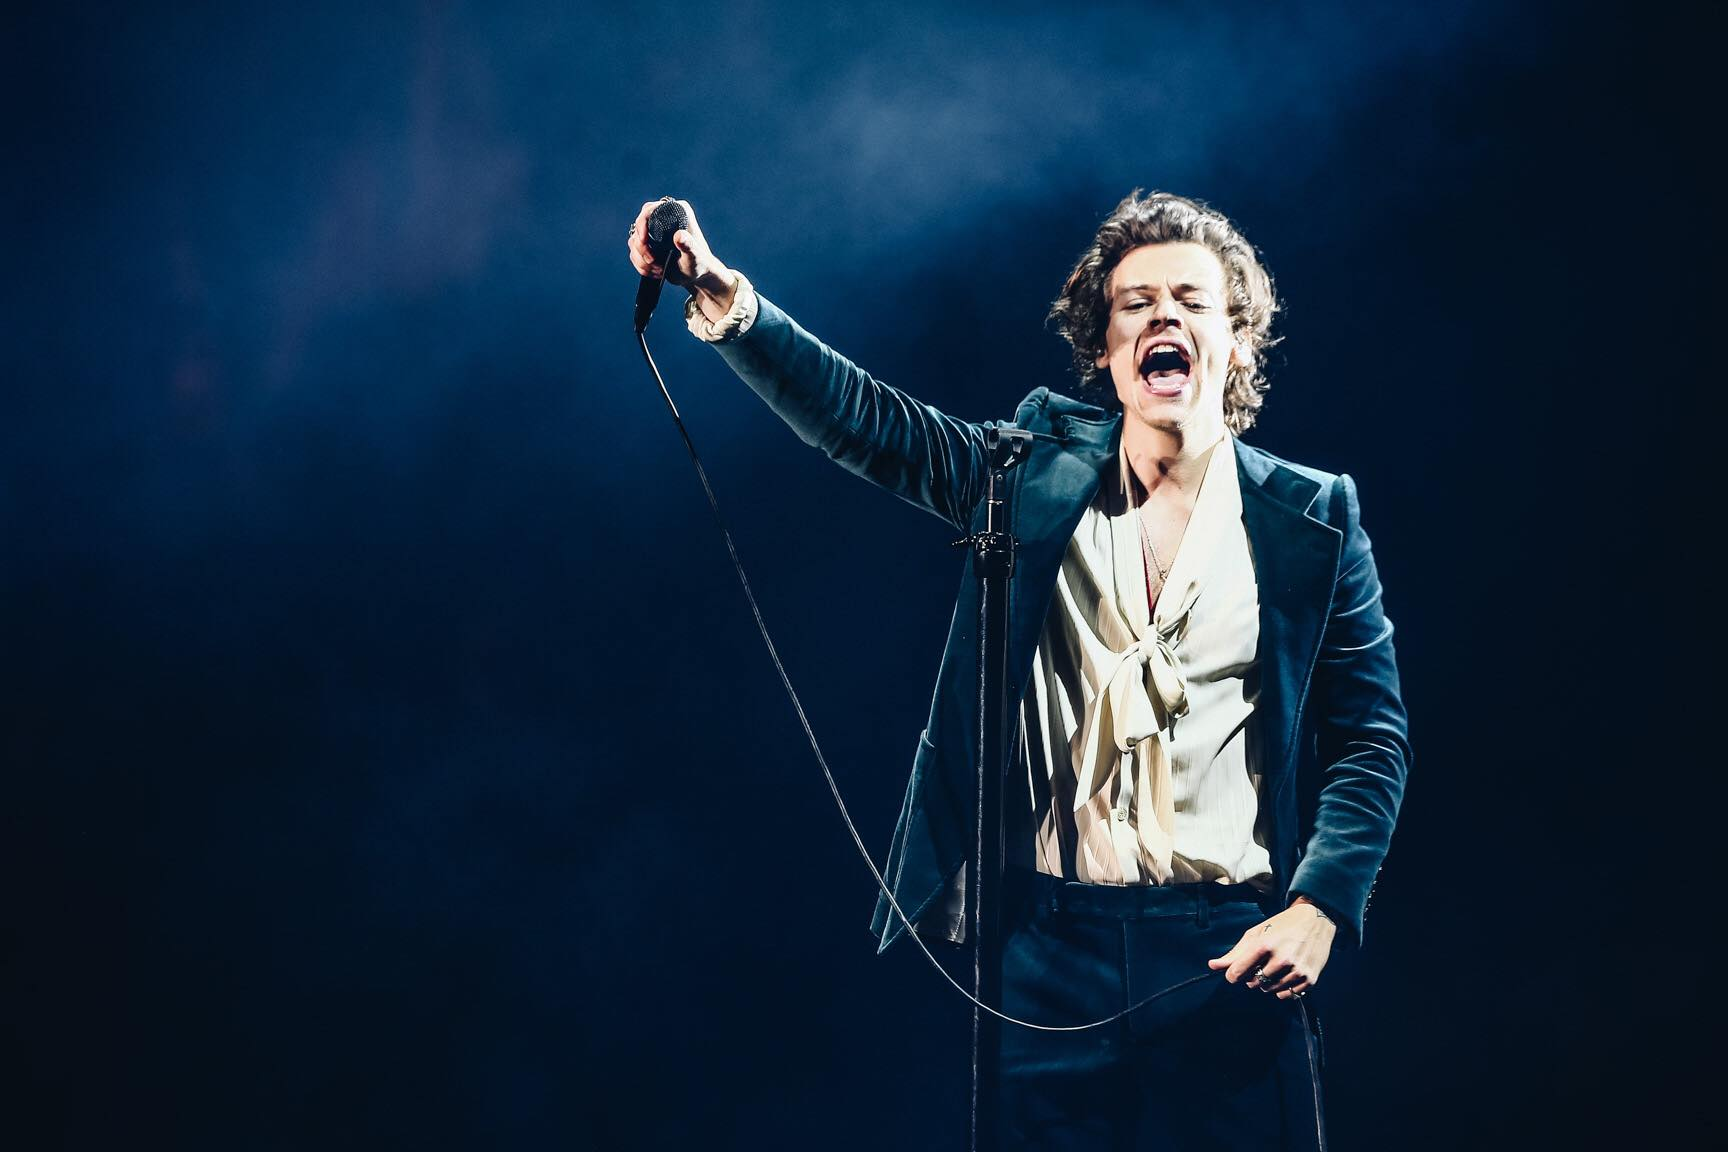 Harry Styles Live on Tour The Forum, Night 1 \u2014 Dressing